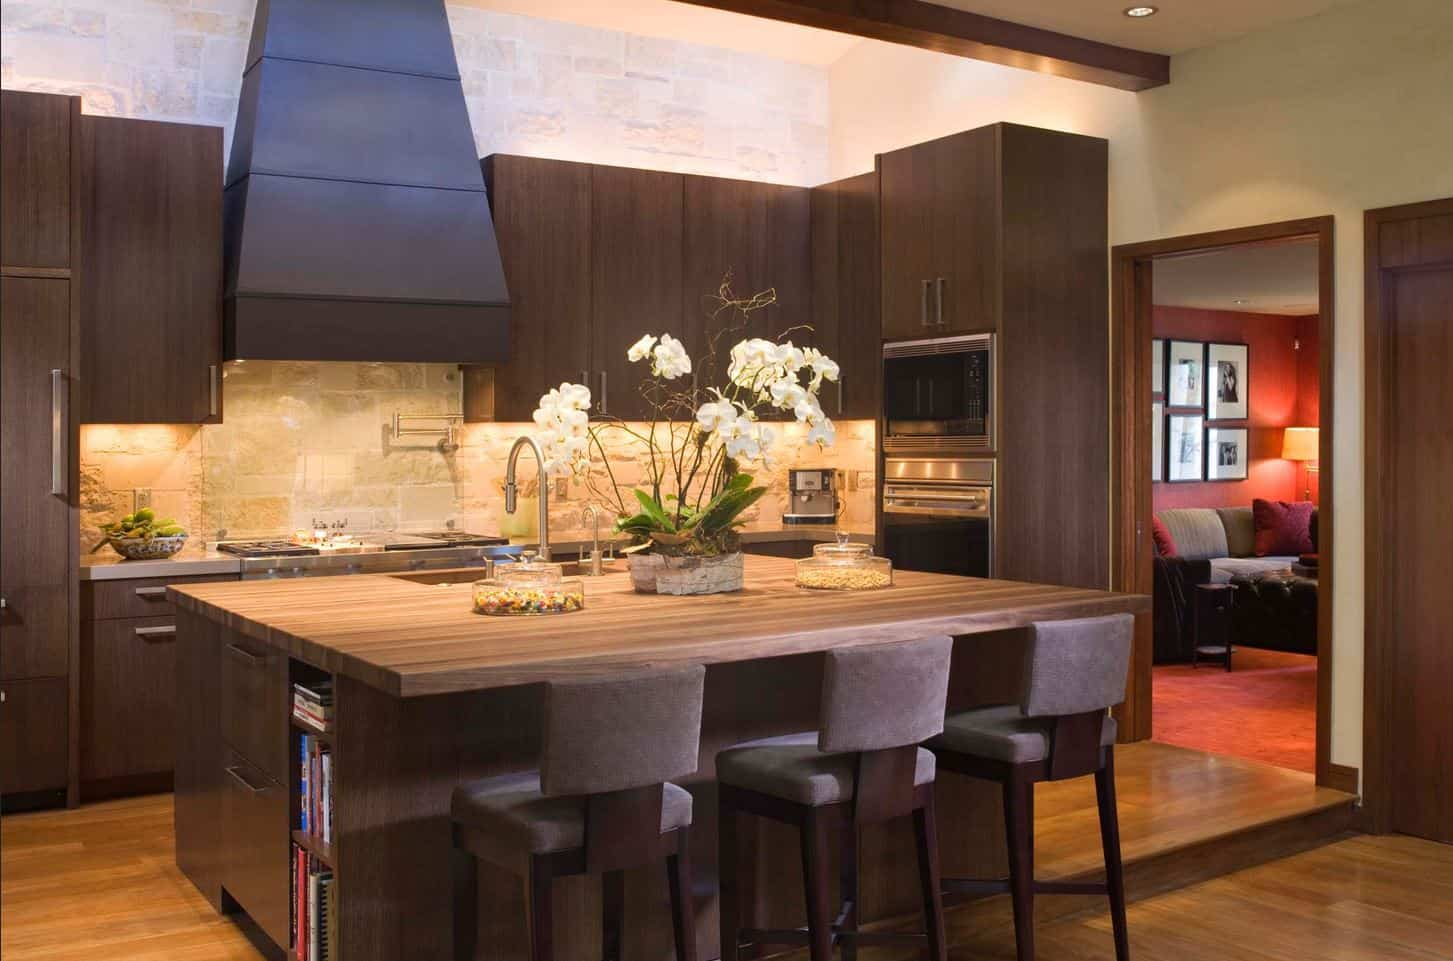 pull up a seat kitchen islands kitchen island chairs Wood Topped Kitchen Island